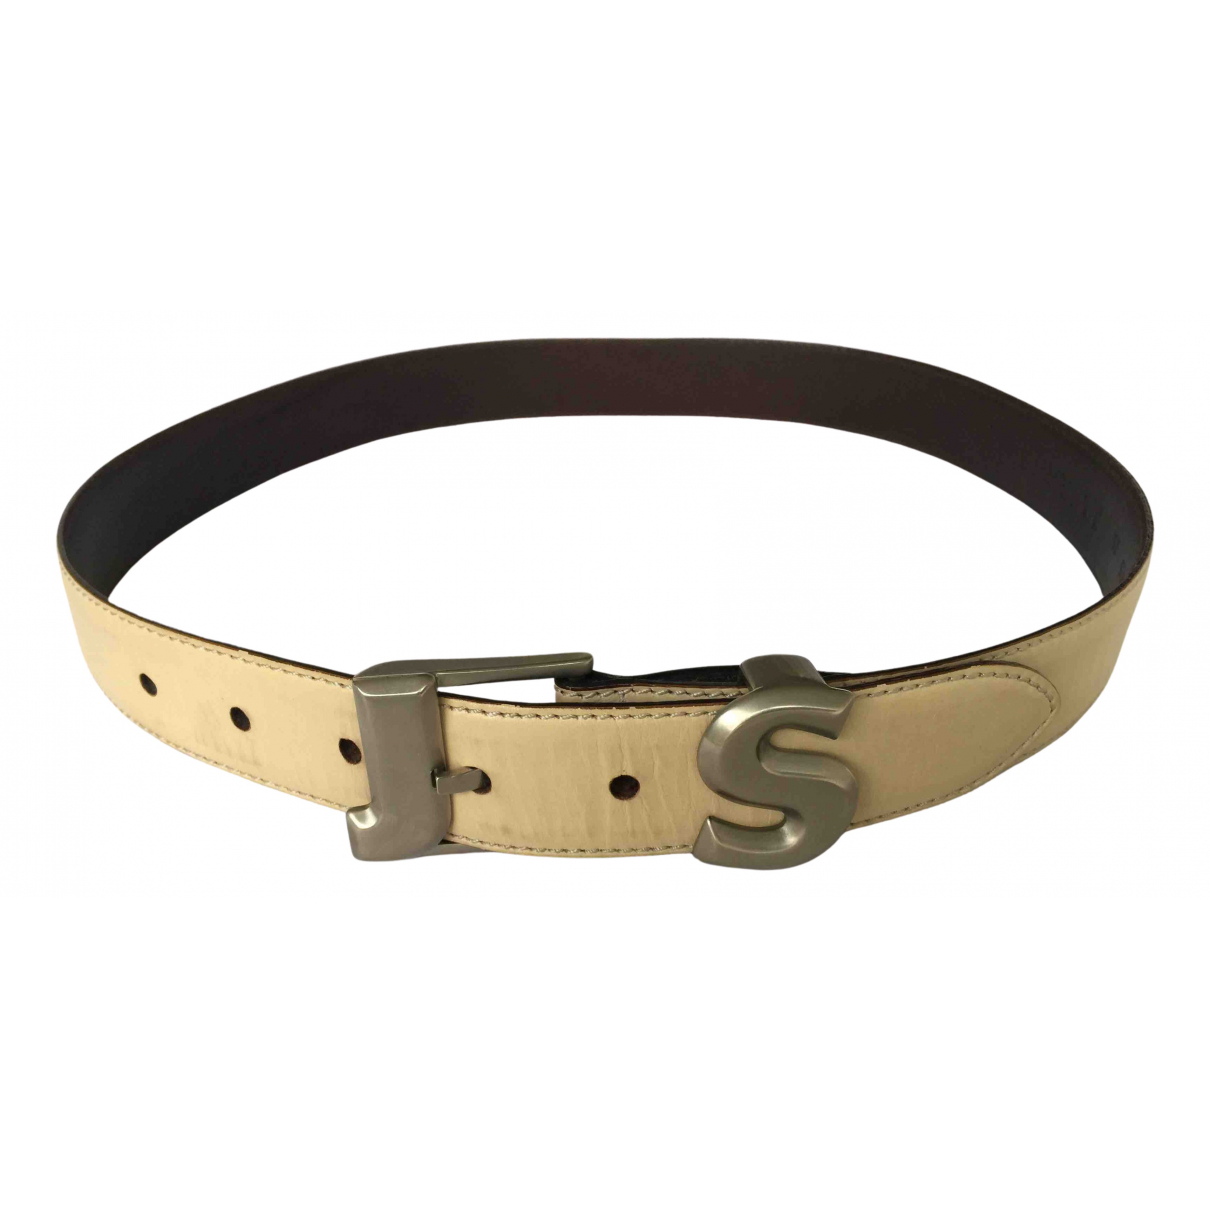 Jil Sander N Ecru Leather belt for Women 75 cm